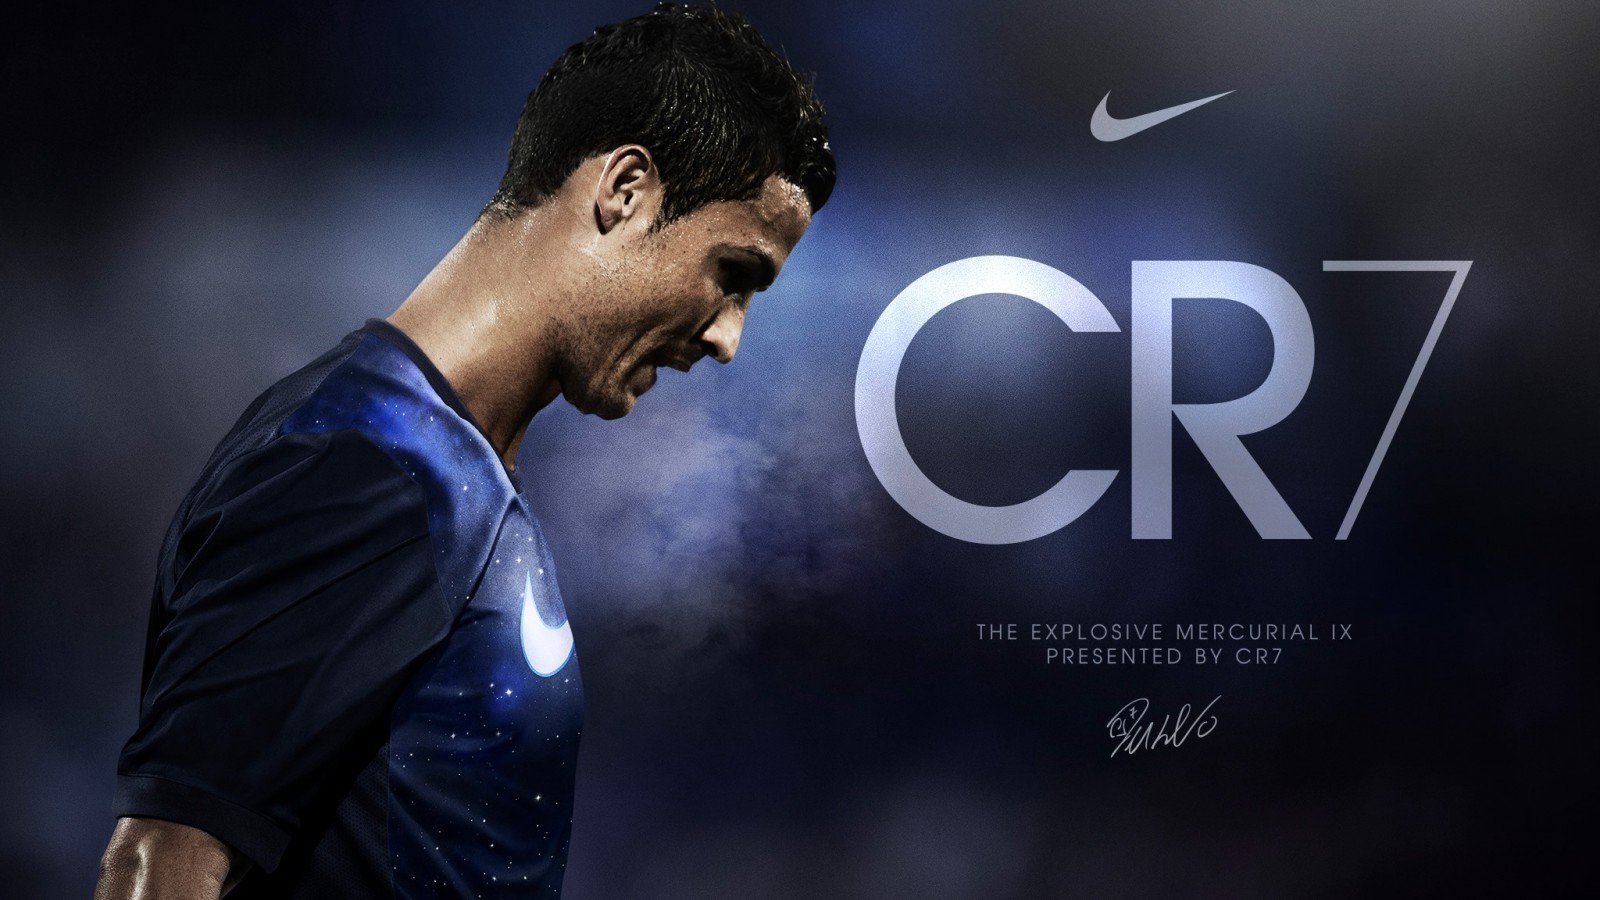 Cristiano Ronaldo Wallpapers HD 1080p